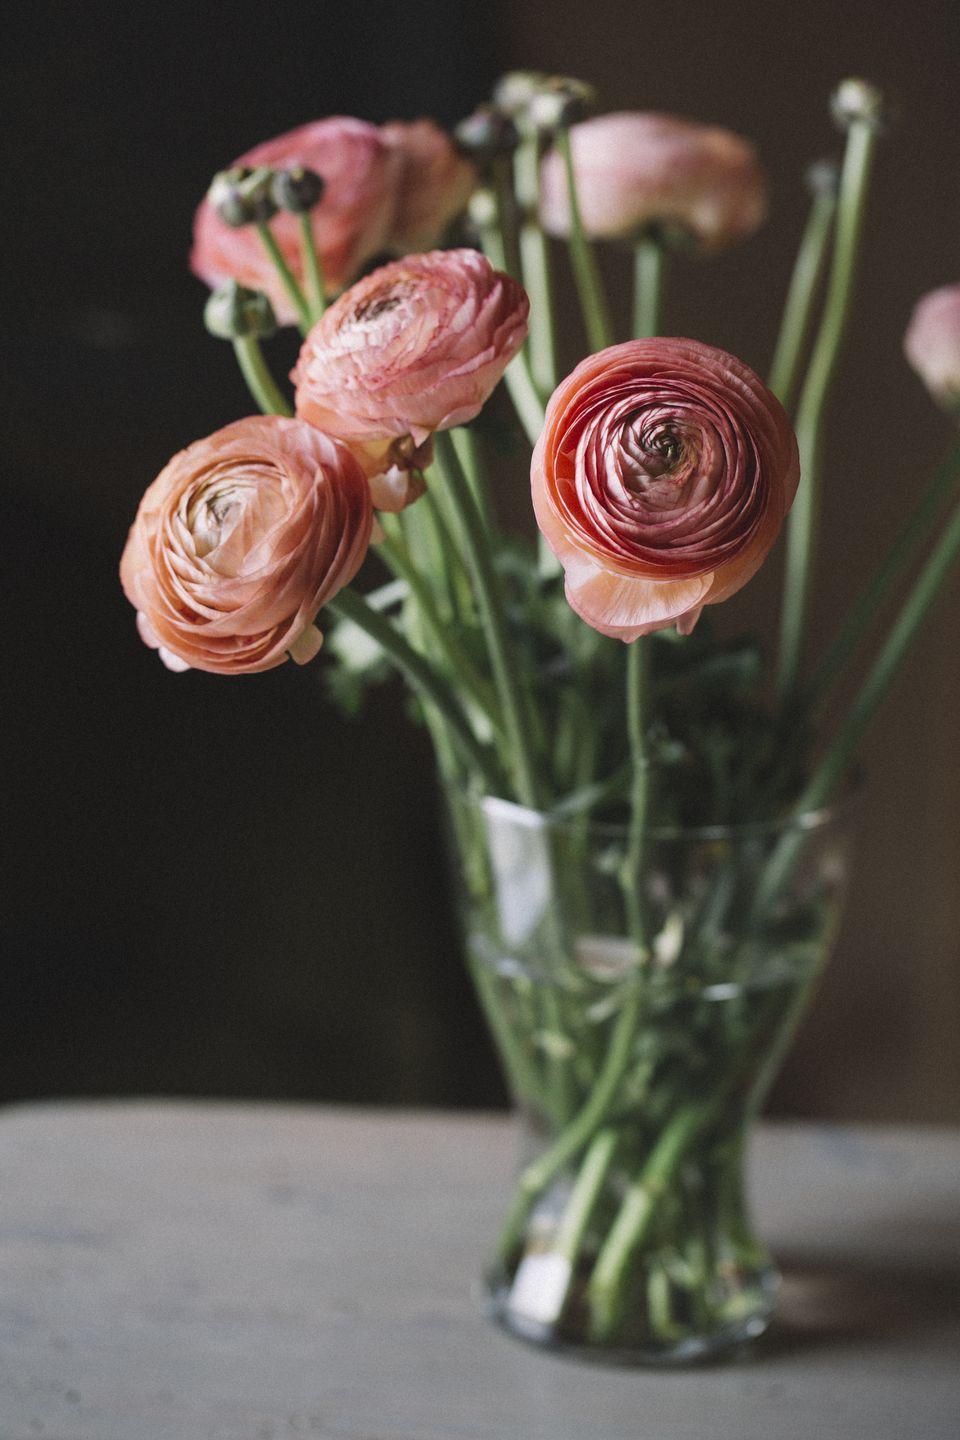 """<p>Appearing in warm, happy colors of orange, yellow, pink, red, and white, ranunculus flowers are comprised of tight circles of petals.</p><p><strong>Bloom season</strong>: Summer</p><p><a class=""""link rapid-noclick-resp"""" href=""""https://go.redirectingat.com?id=74968X1596630&url=https%3A%2F%2Fwww.homedepot.com%2Fp%2FVan-Zyverden-Butter-Cups-Ranunculus-Double-Pink-Bulbs-Set-of-25-833221%2F301135441&sref=https%3A%2F%2Fwww.redbookmag.com%2Fhome%2Fg35661704%2Fbeautiful-flower-images%2F"""" rel=""""nofollow noopener"""" target=""""_blank"""" data-ylk=""""slk:SHOP RANUNCULUS"""">SHOP RANUNCULUS</a></p>"""